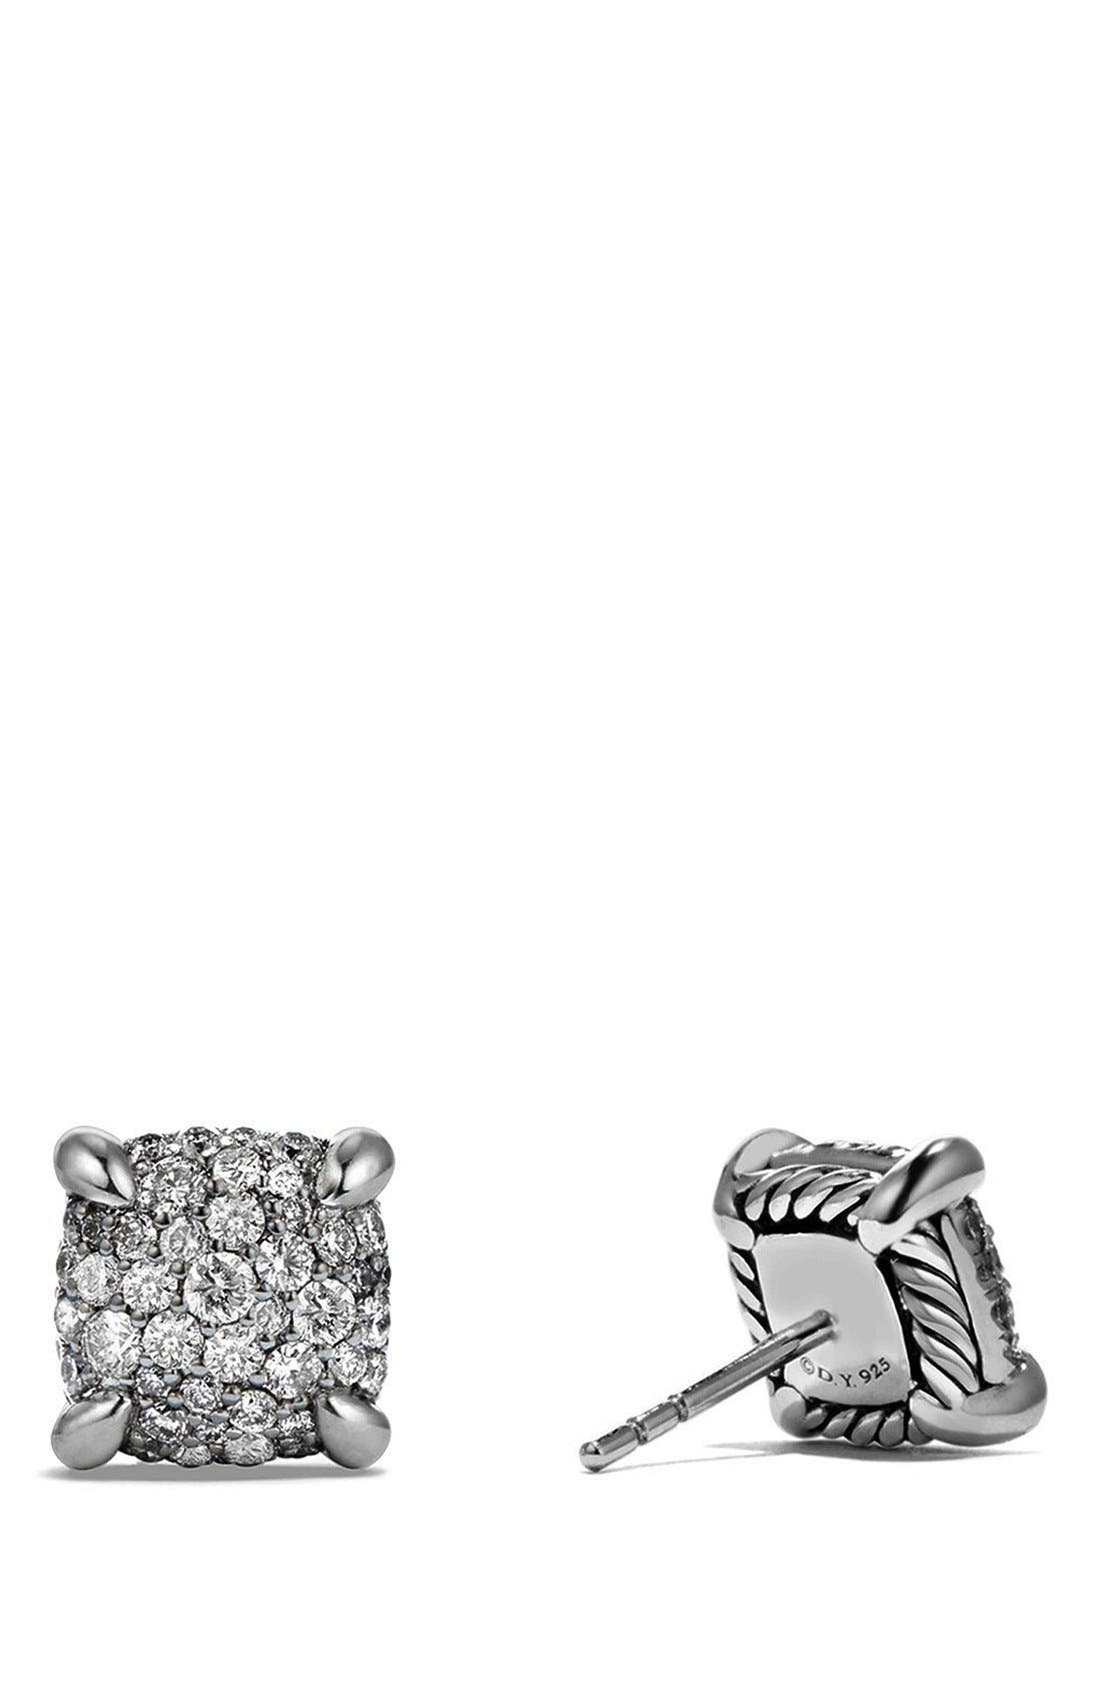 Alternate Image 2  - David Yurman 'Châtelaine' Earrings with Diamonds